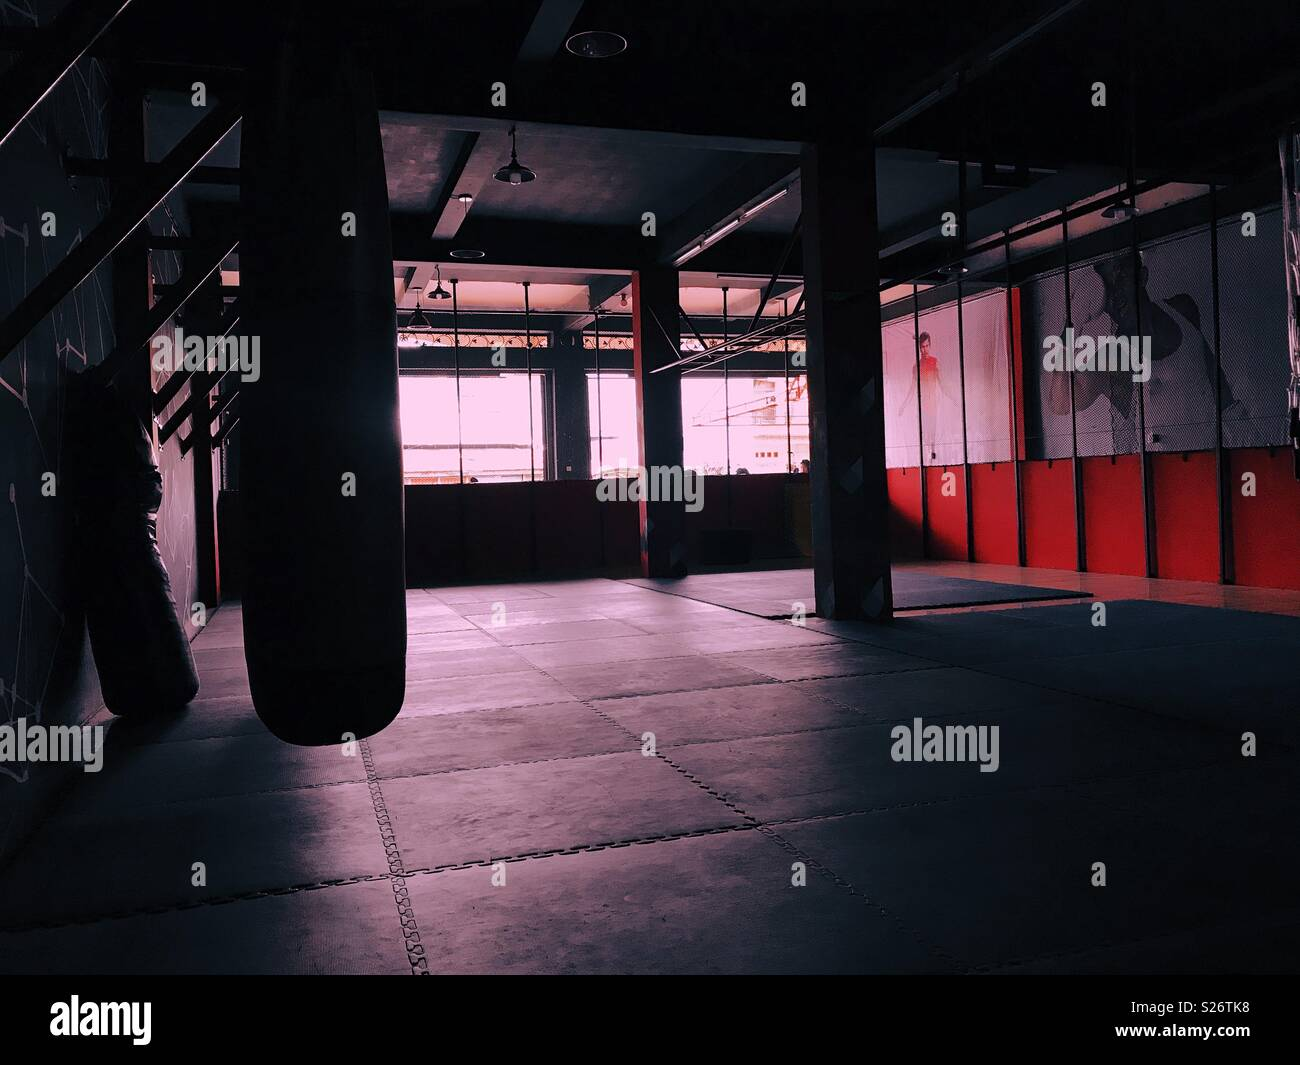 At gym in little light - Stock Image